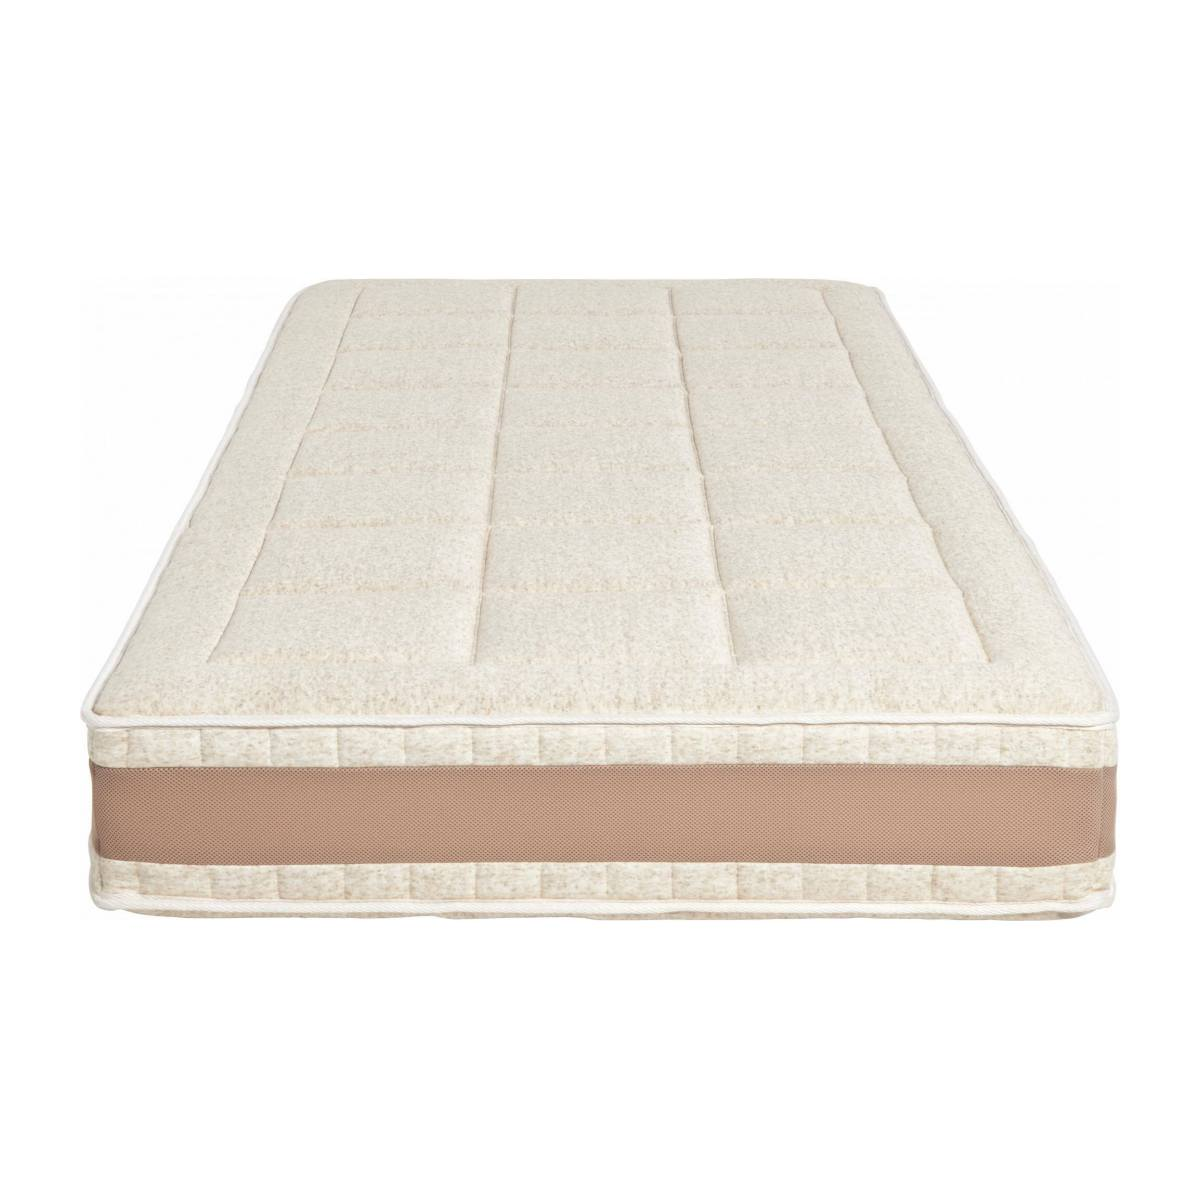 Latex mattress , width 23 cm, 90x200cm - firm support n°2